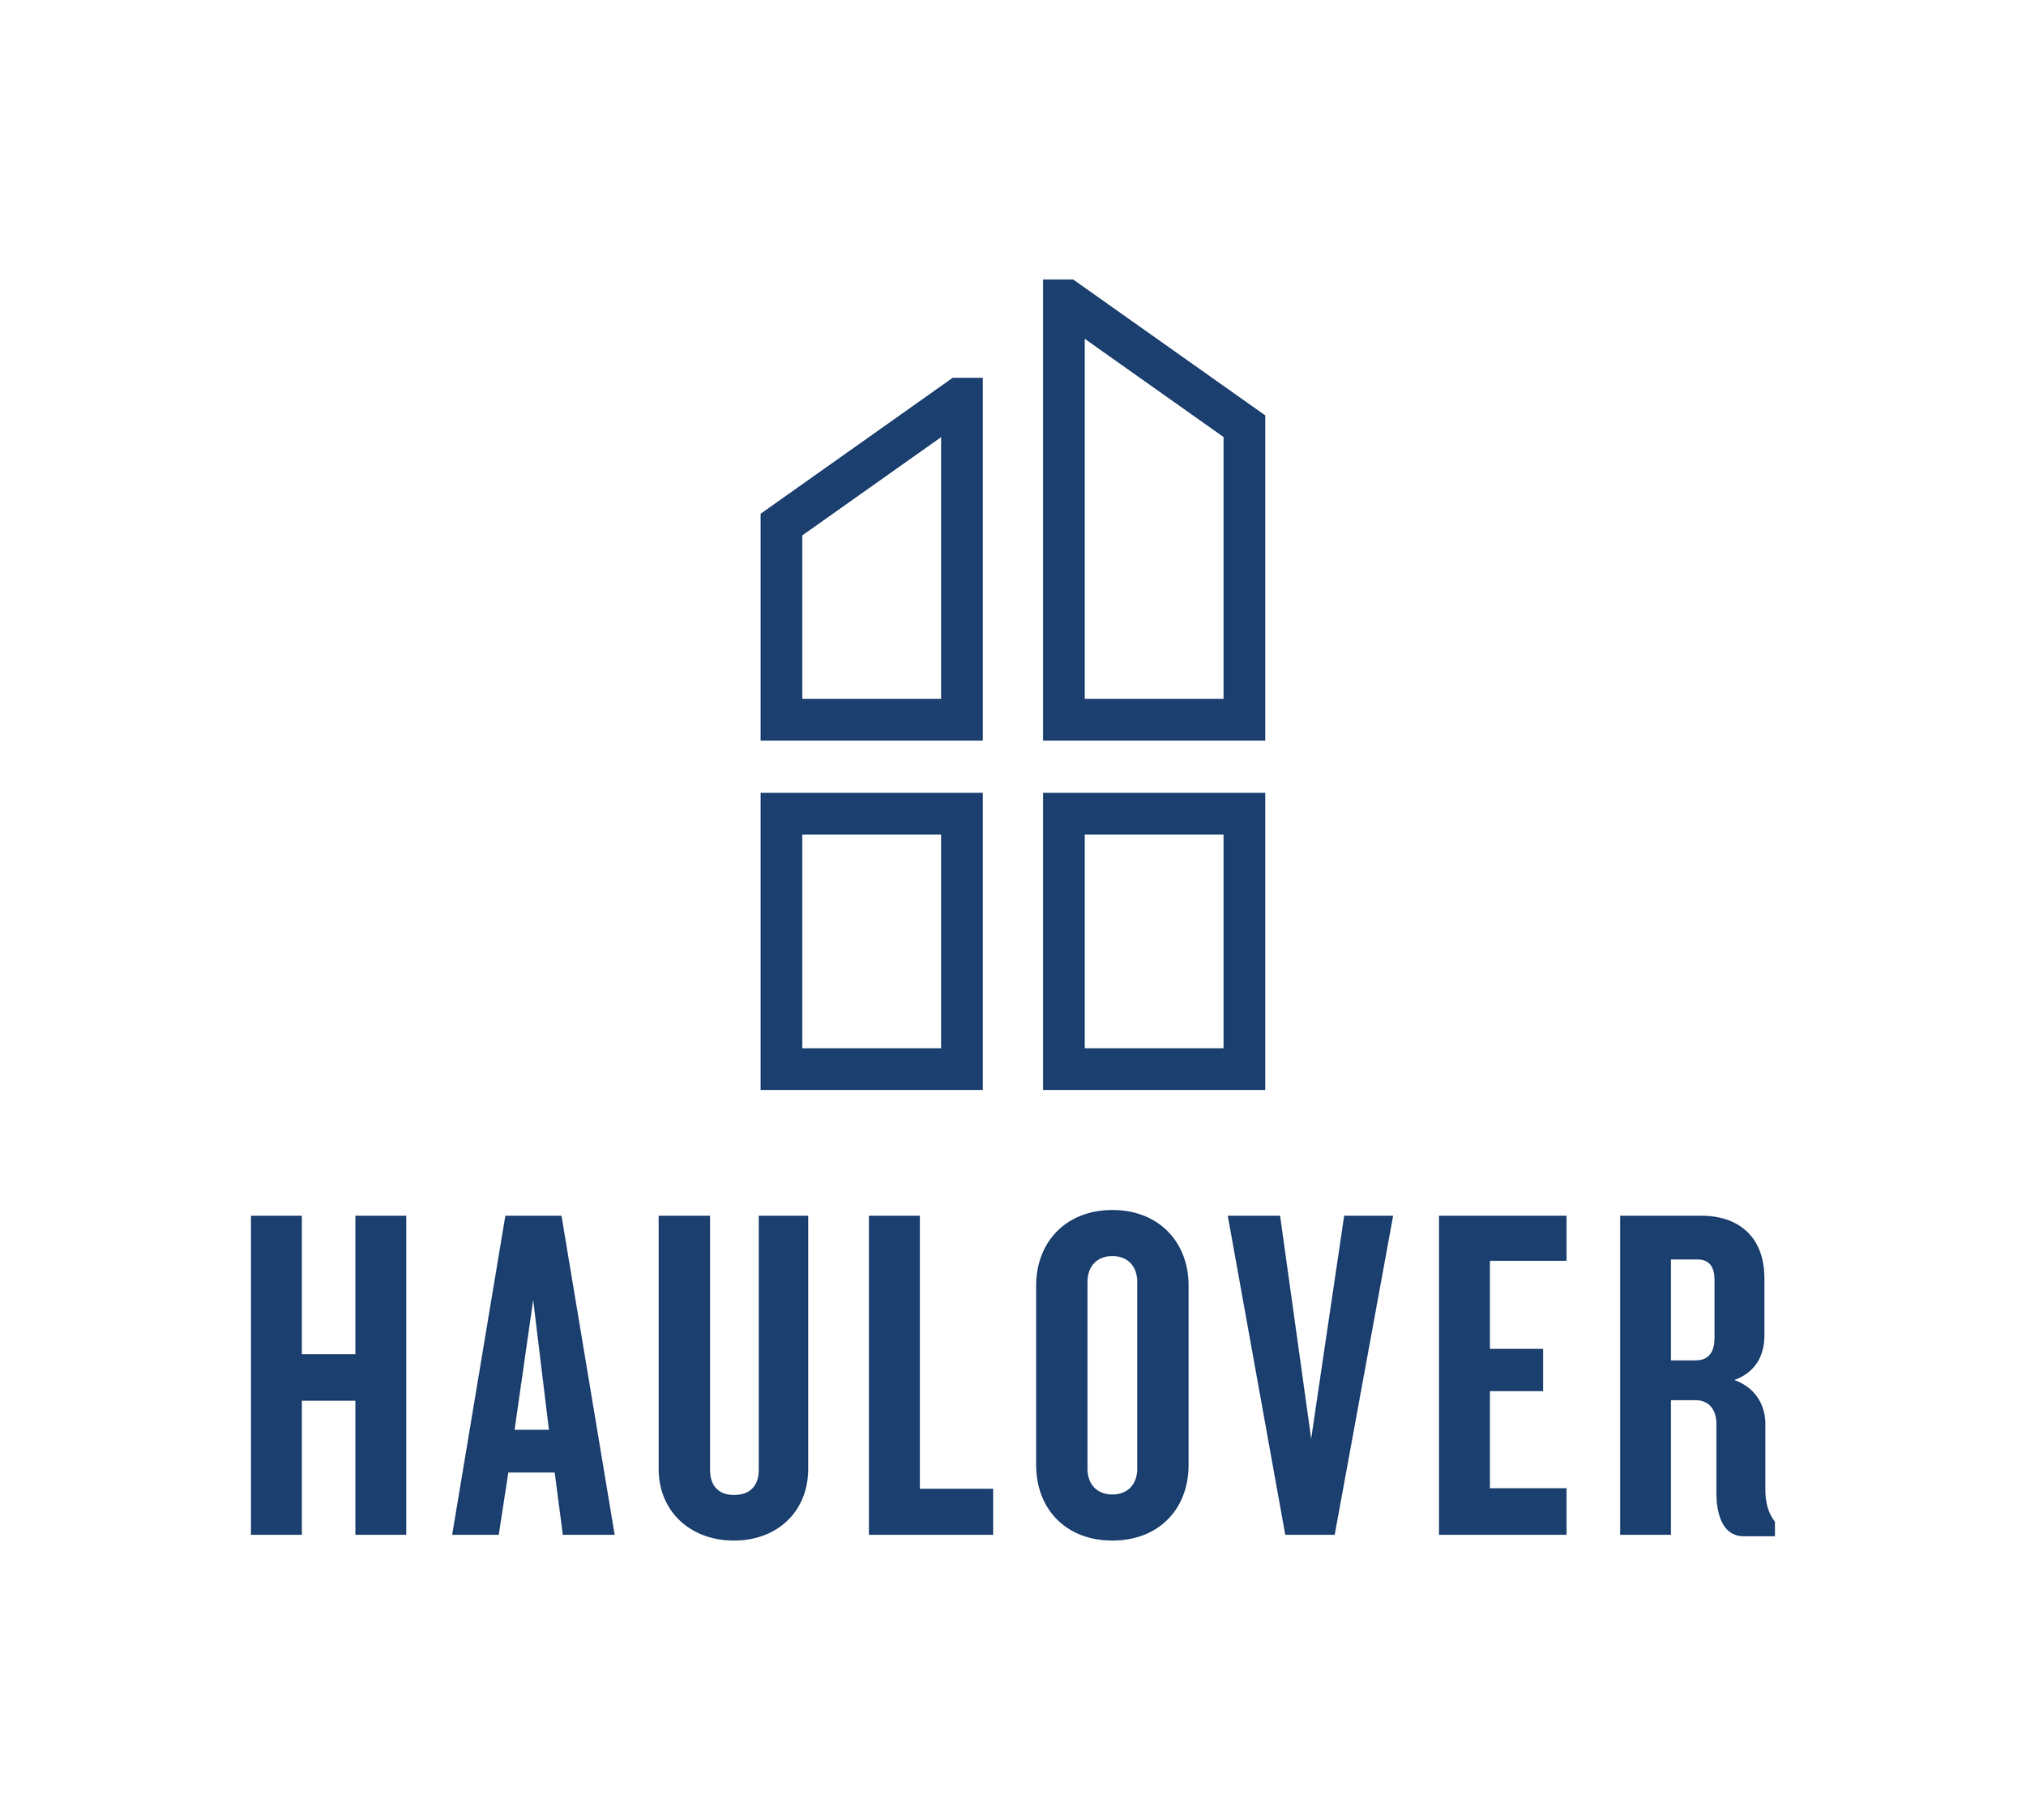 HauloverInvestments-logo-stacked.png